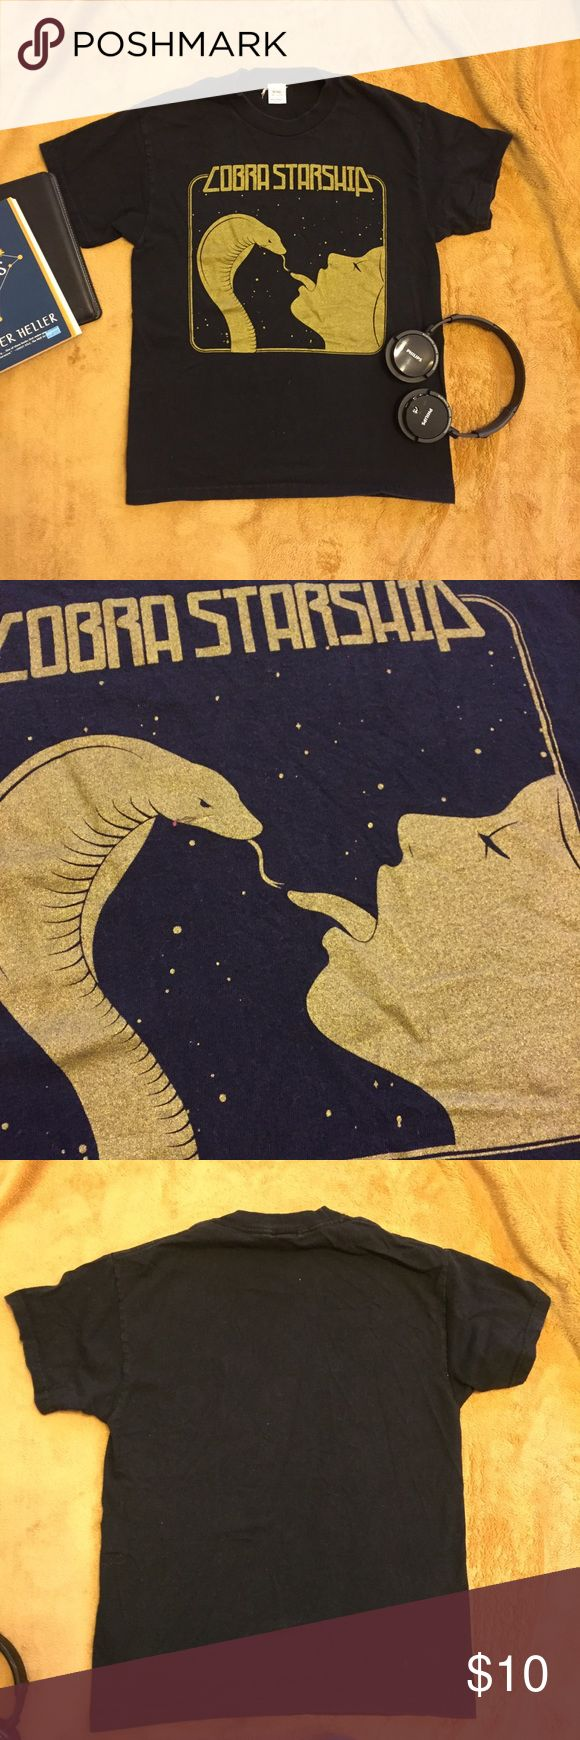 """Cobra Starship Band Tee w/ Metallic Gold Print T-shirt from the pop band Cobra Starship circa 2006. Eye-catching design is printed in metallic gold.   Shirt is in great condition, no stains or holes. The print itself is also in good condition, not worn down.  Measurements:  Bust 34"""" Waist 34"""" Shoulder to shoulder: 15.5"""" Tops Tees - Short Sleeve"""